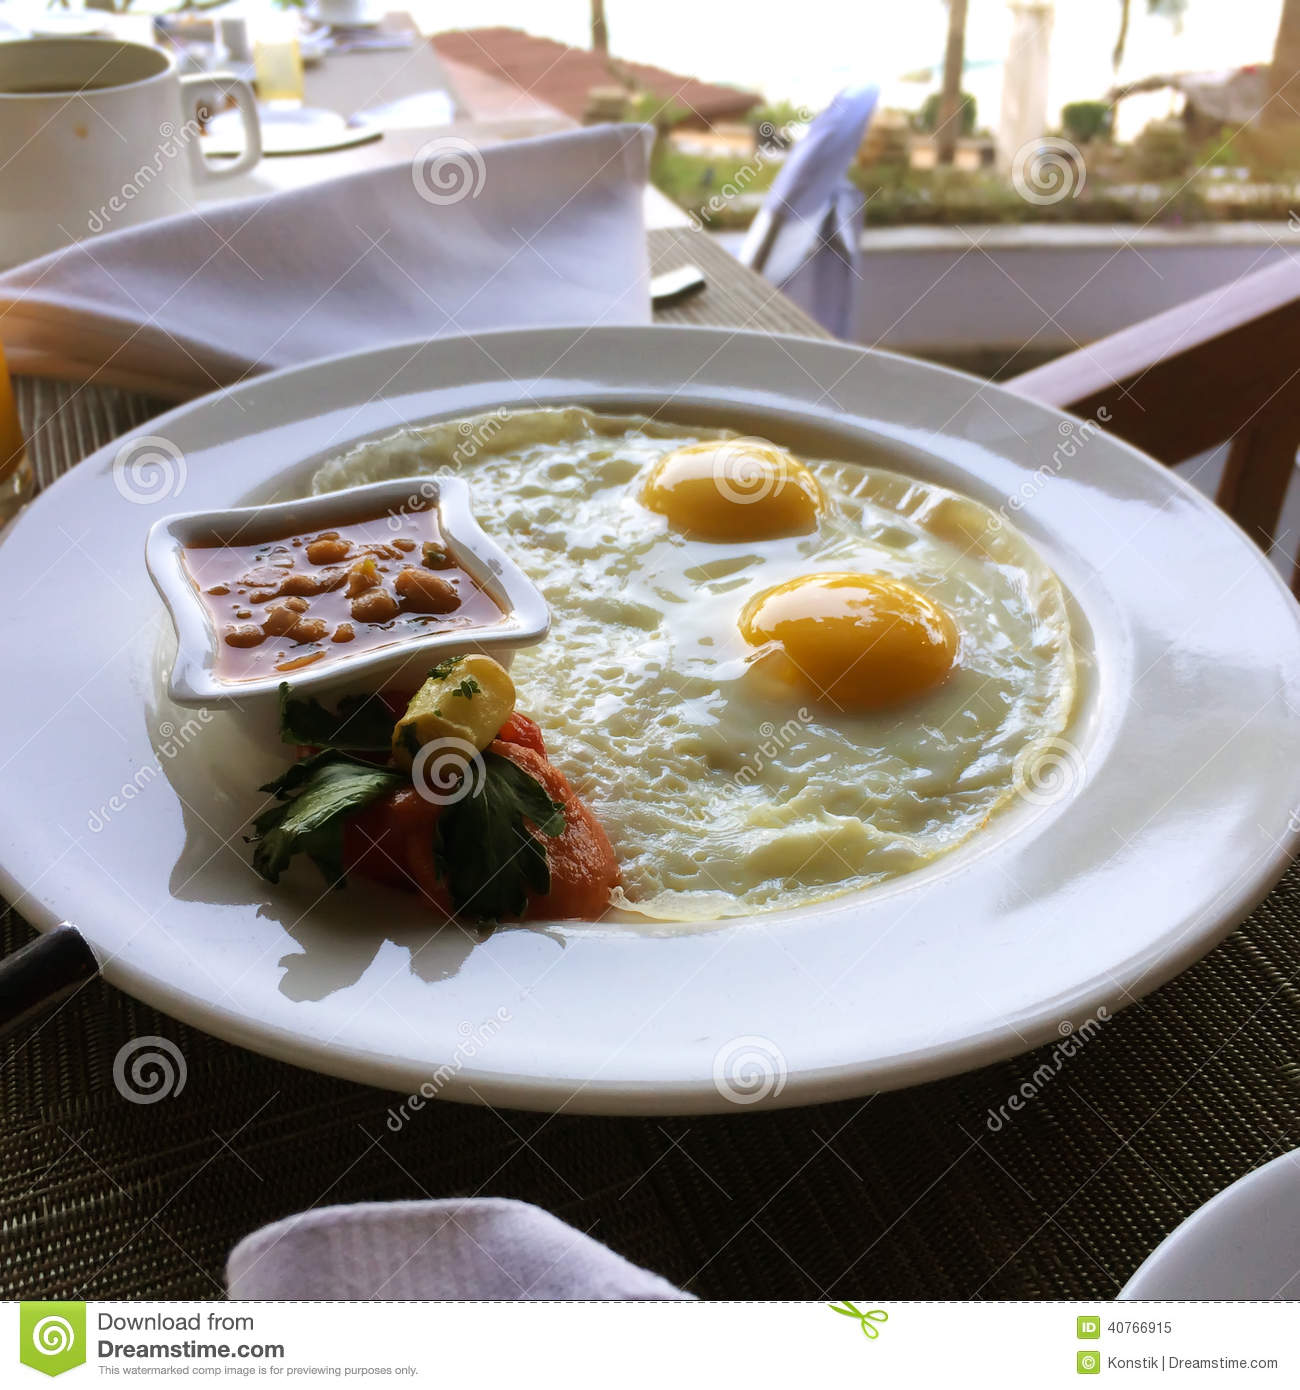 Fried Egg and Bacon Plate Fake Food - FAKE FOOD ...  |Fried Eggs On A Plate